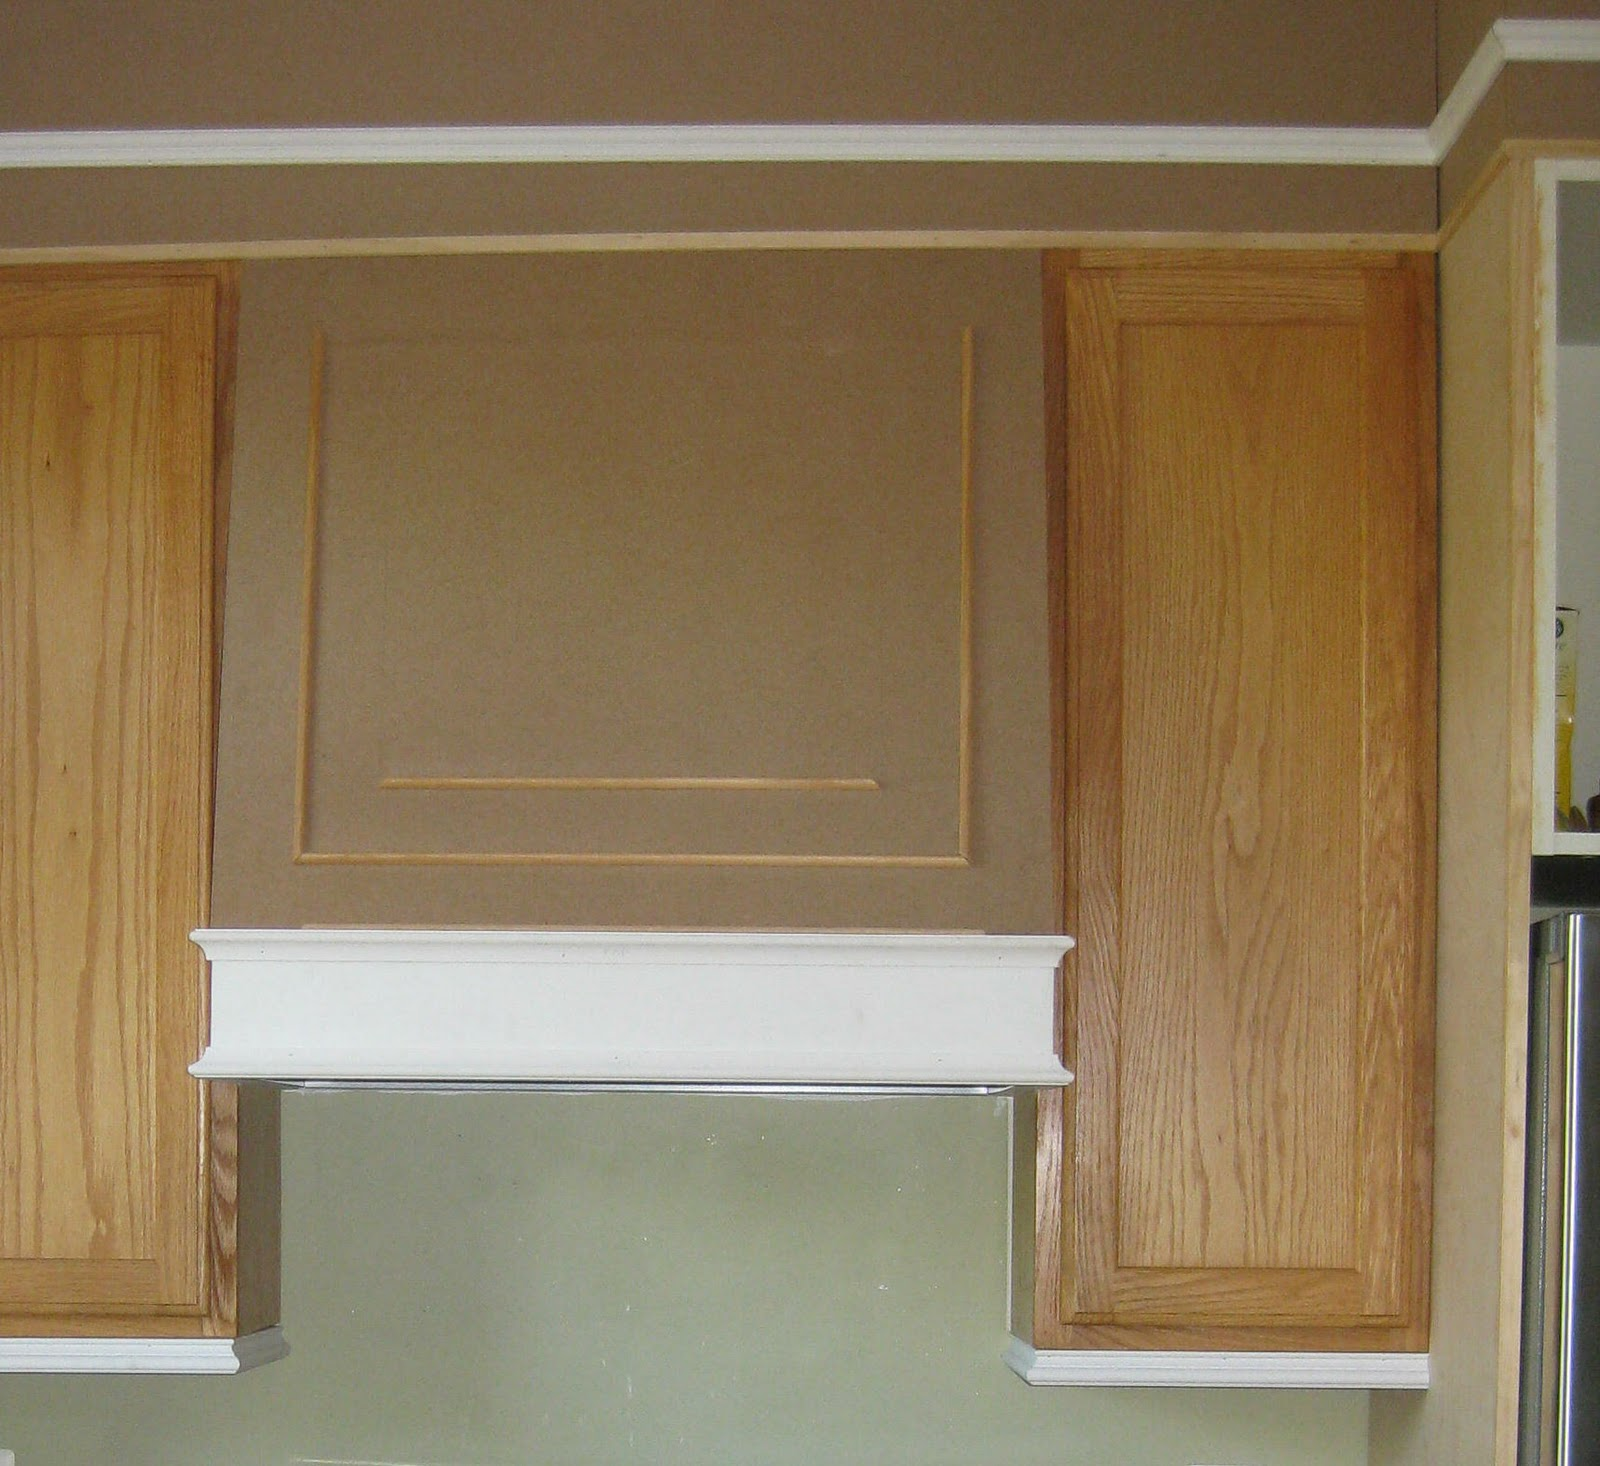 builders grade kitchen upgraded with moldings and paint: kitchen moldings